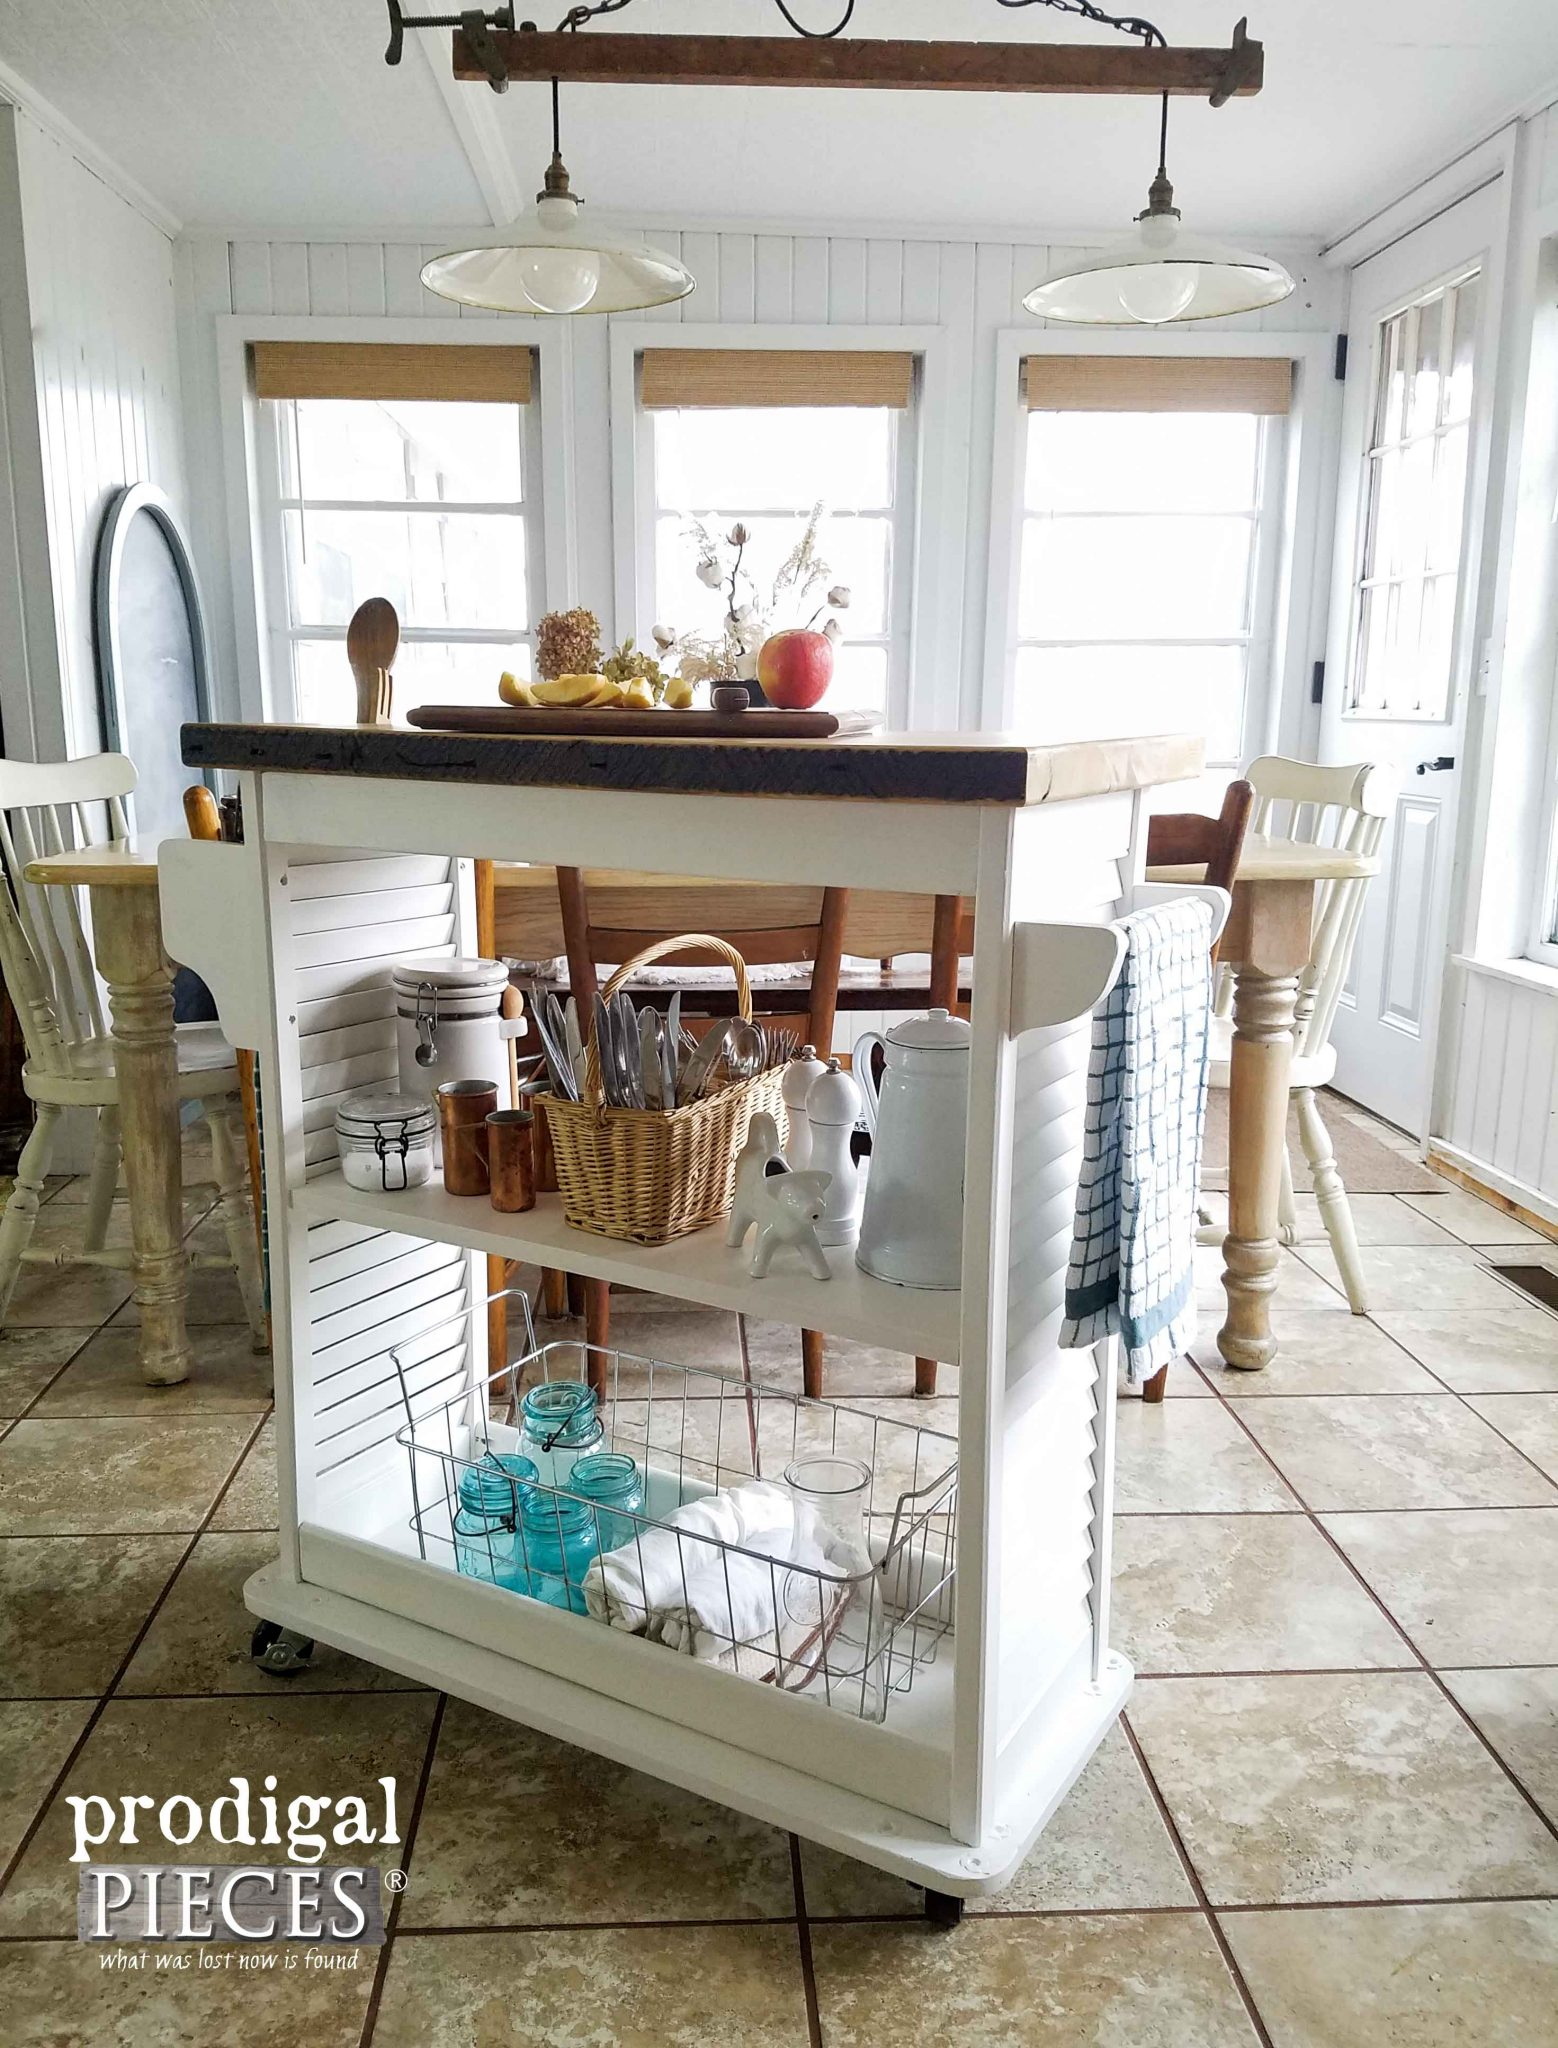 Towel Bars and Ample Storage Featured on this Upcycled Kitchen Island Cart by Prodigal Pieces | prodigalpieces.com